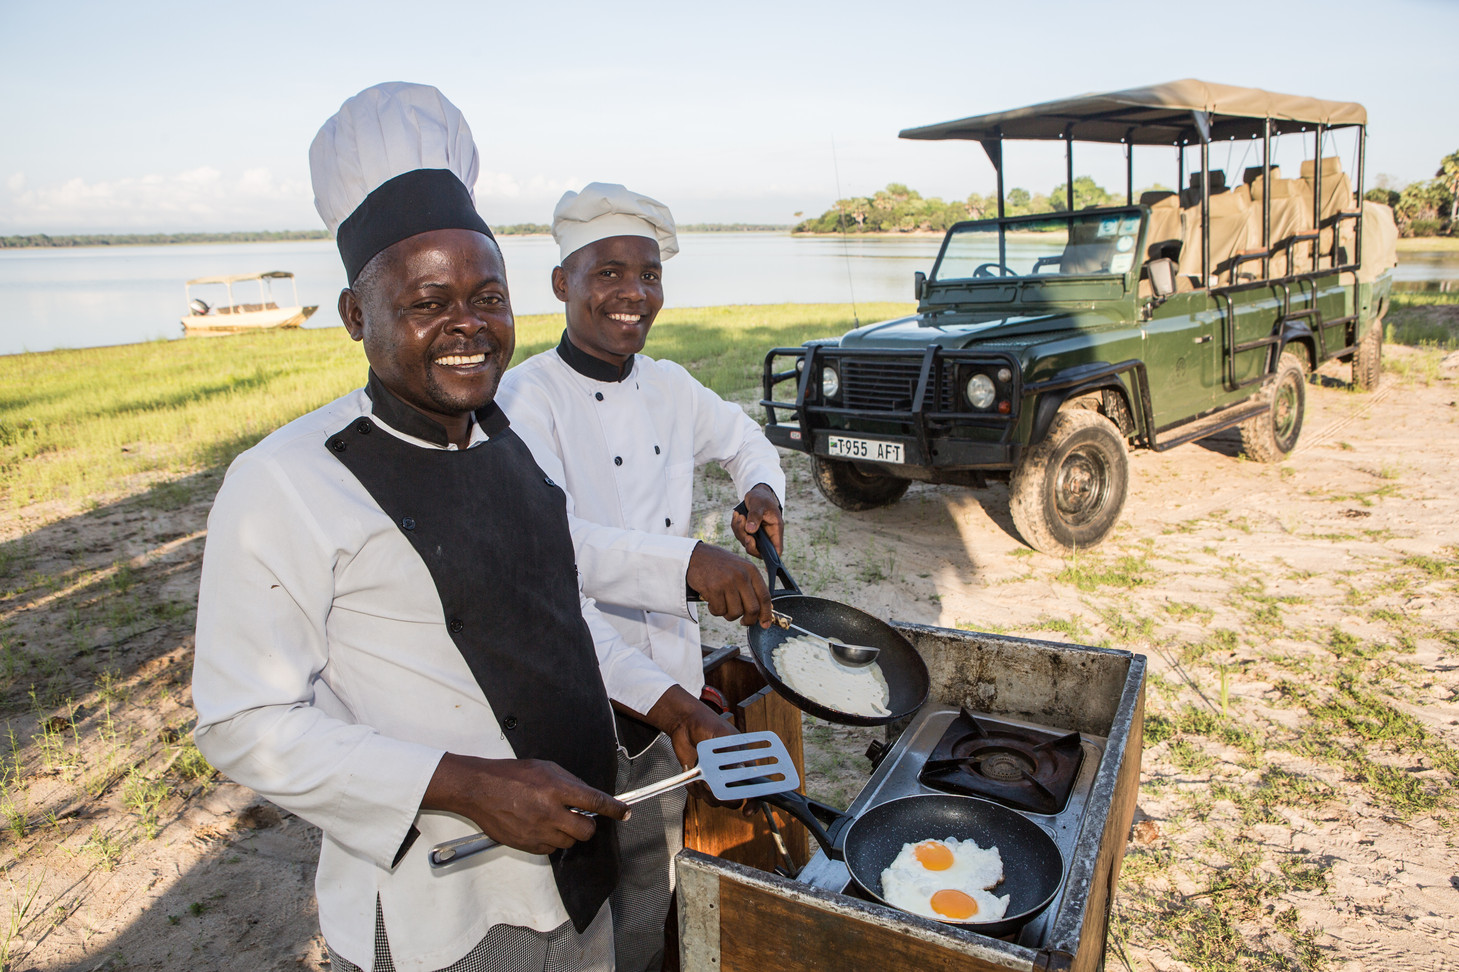 Bush Breakfast at Siwandu, Nyerere, Selous